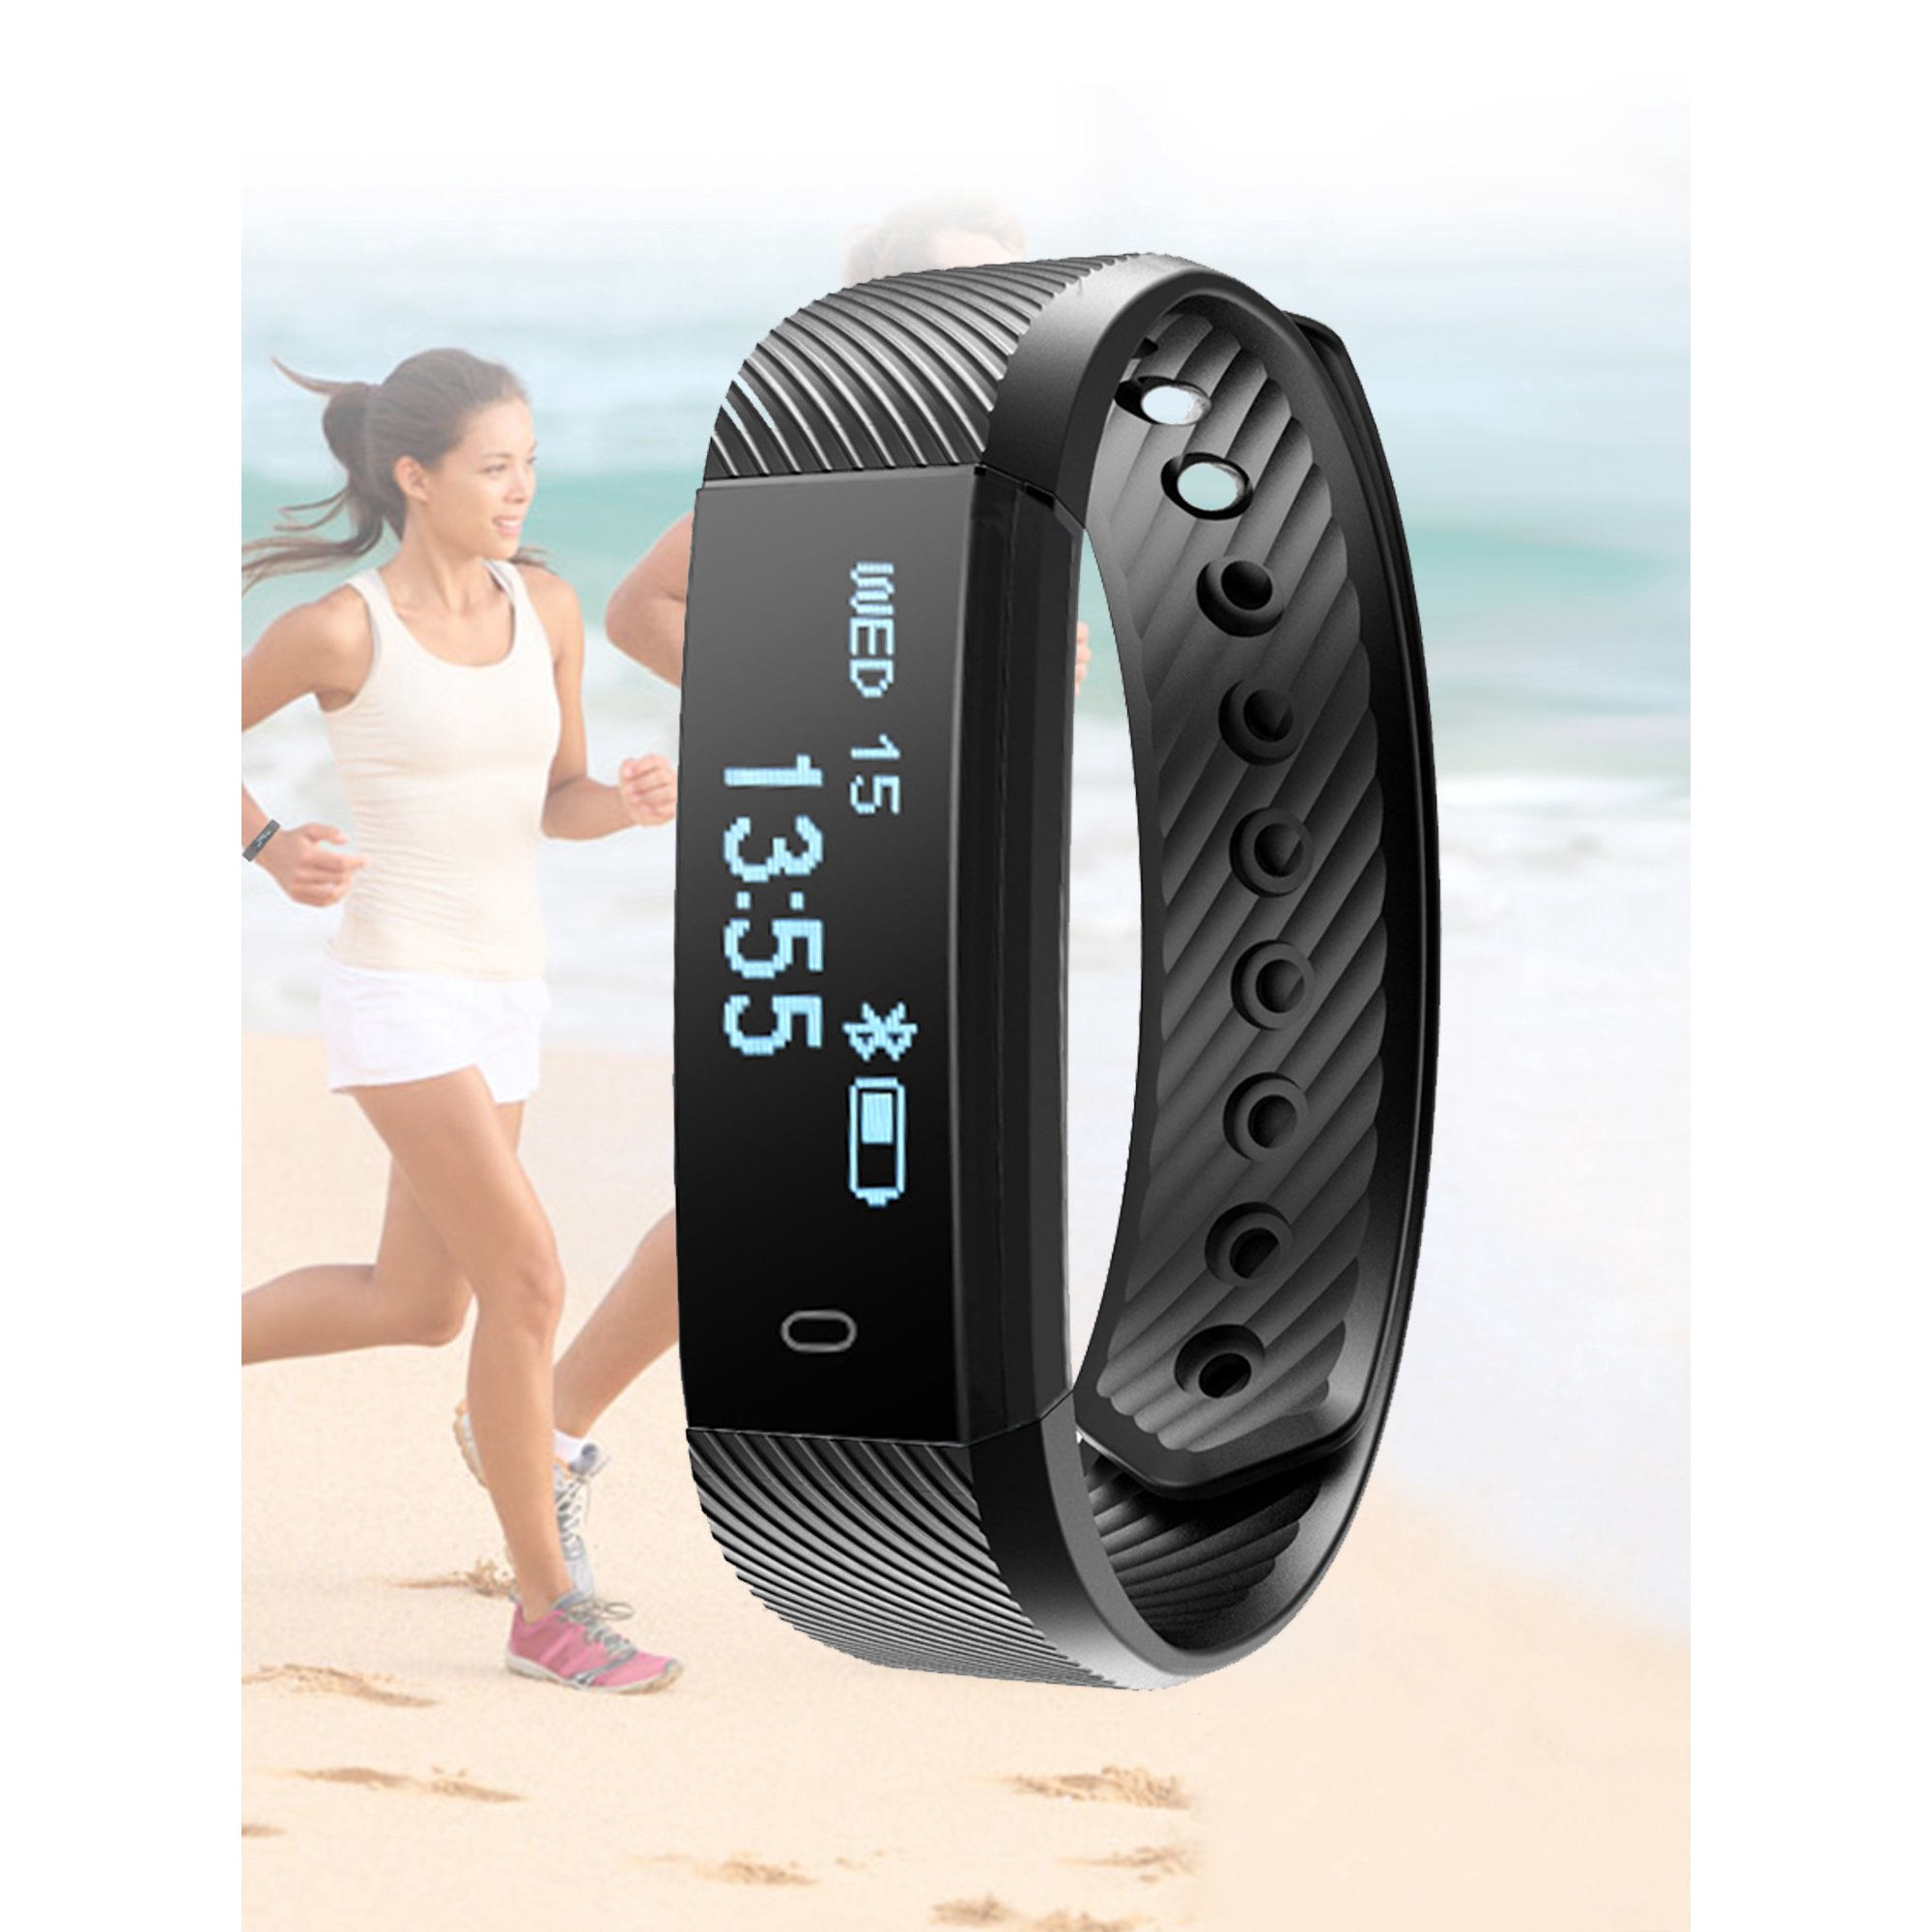 Objective Waterproof 1.5 Inch Display Message Remind Bluetooth Smart Bracelet Fitness Tracker Heart Rate Monitor Smart Wristband 2019 Watches